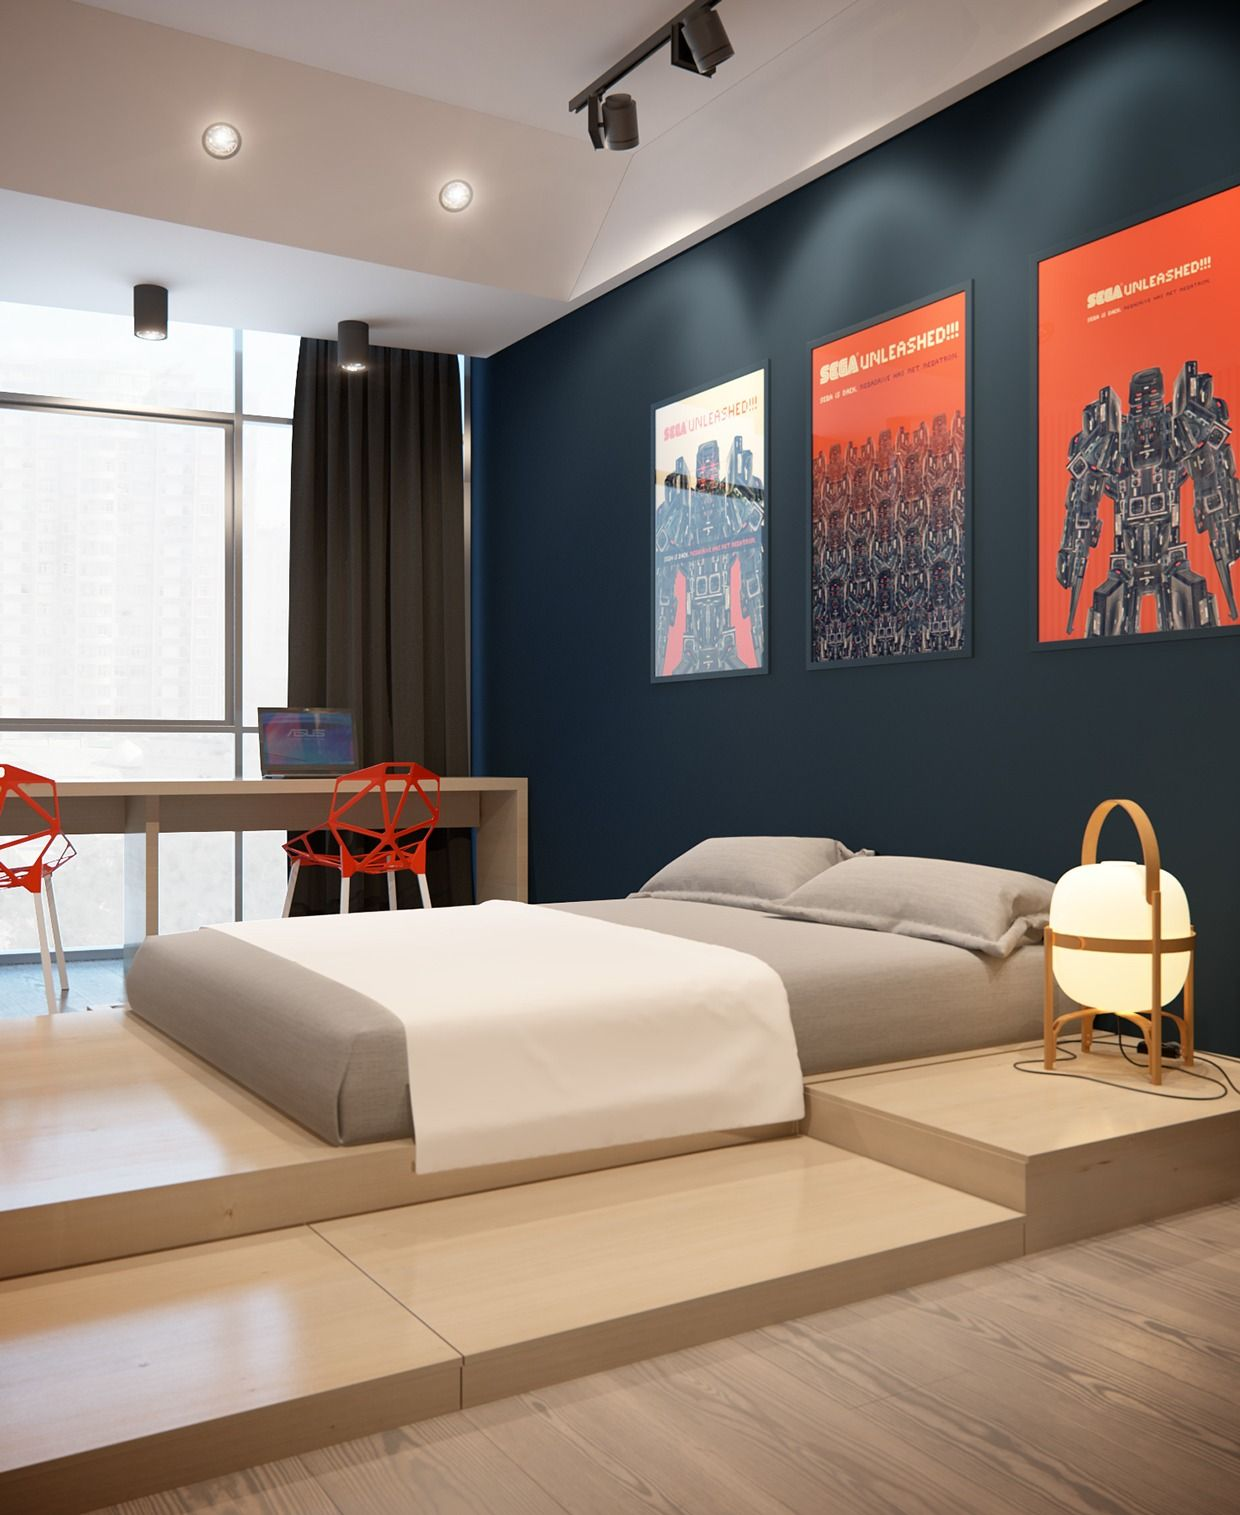 Bedroom Design Ideas Men A Modern Interior Home Design Which Combining A Classic Decor That